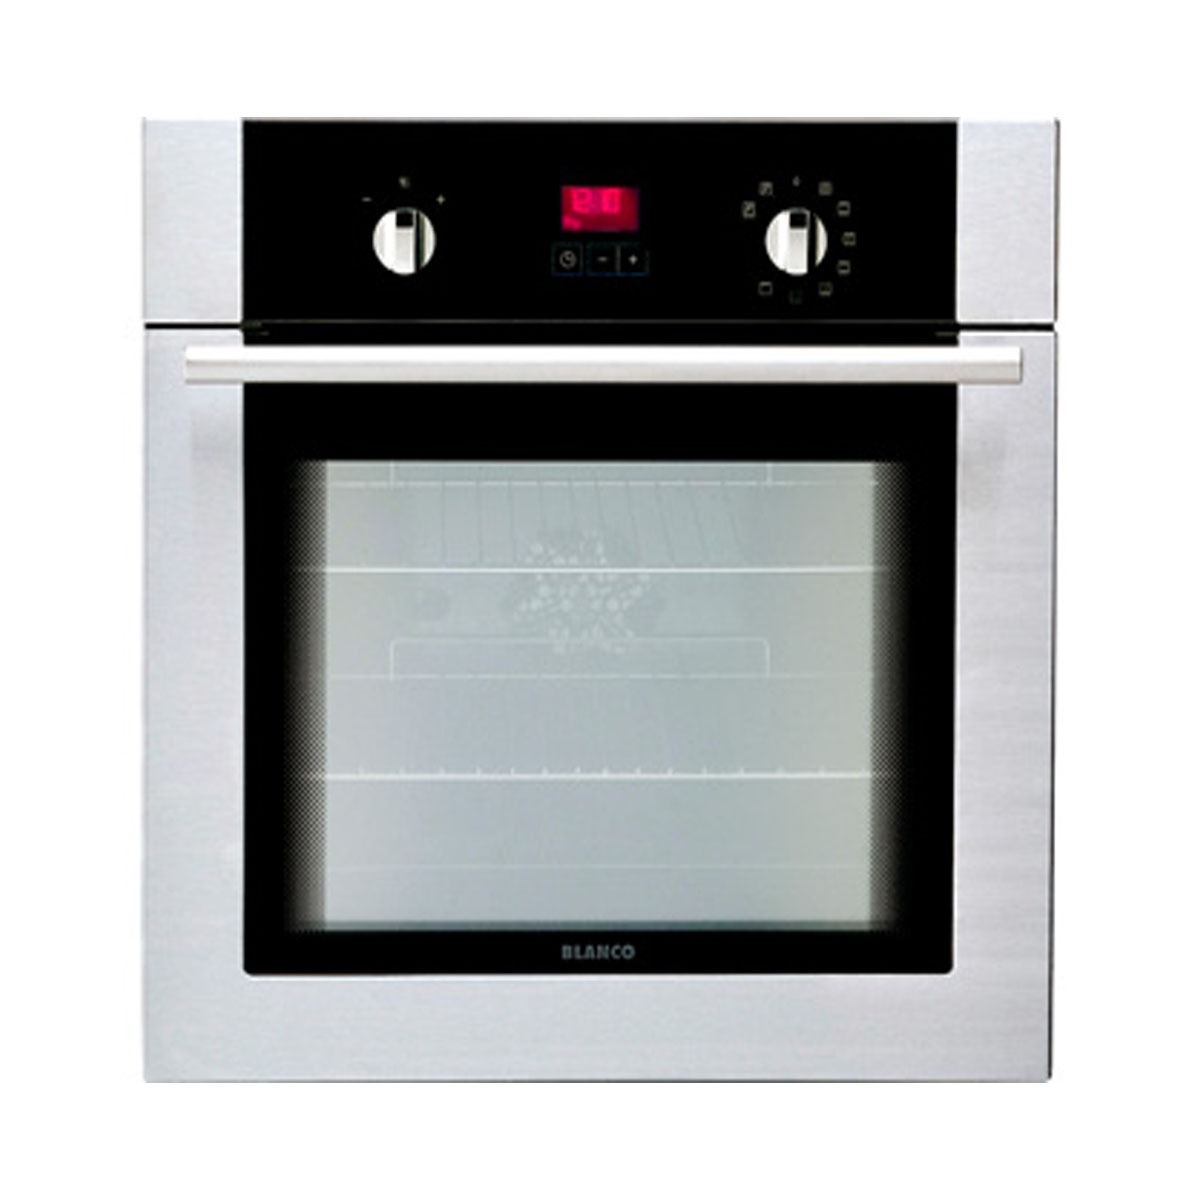 Blanco BOSE69PX 600mm/60cm Electric Oven BOSE69PX